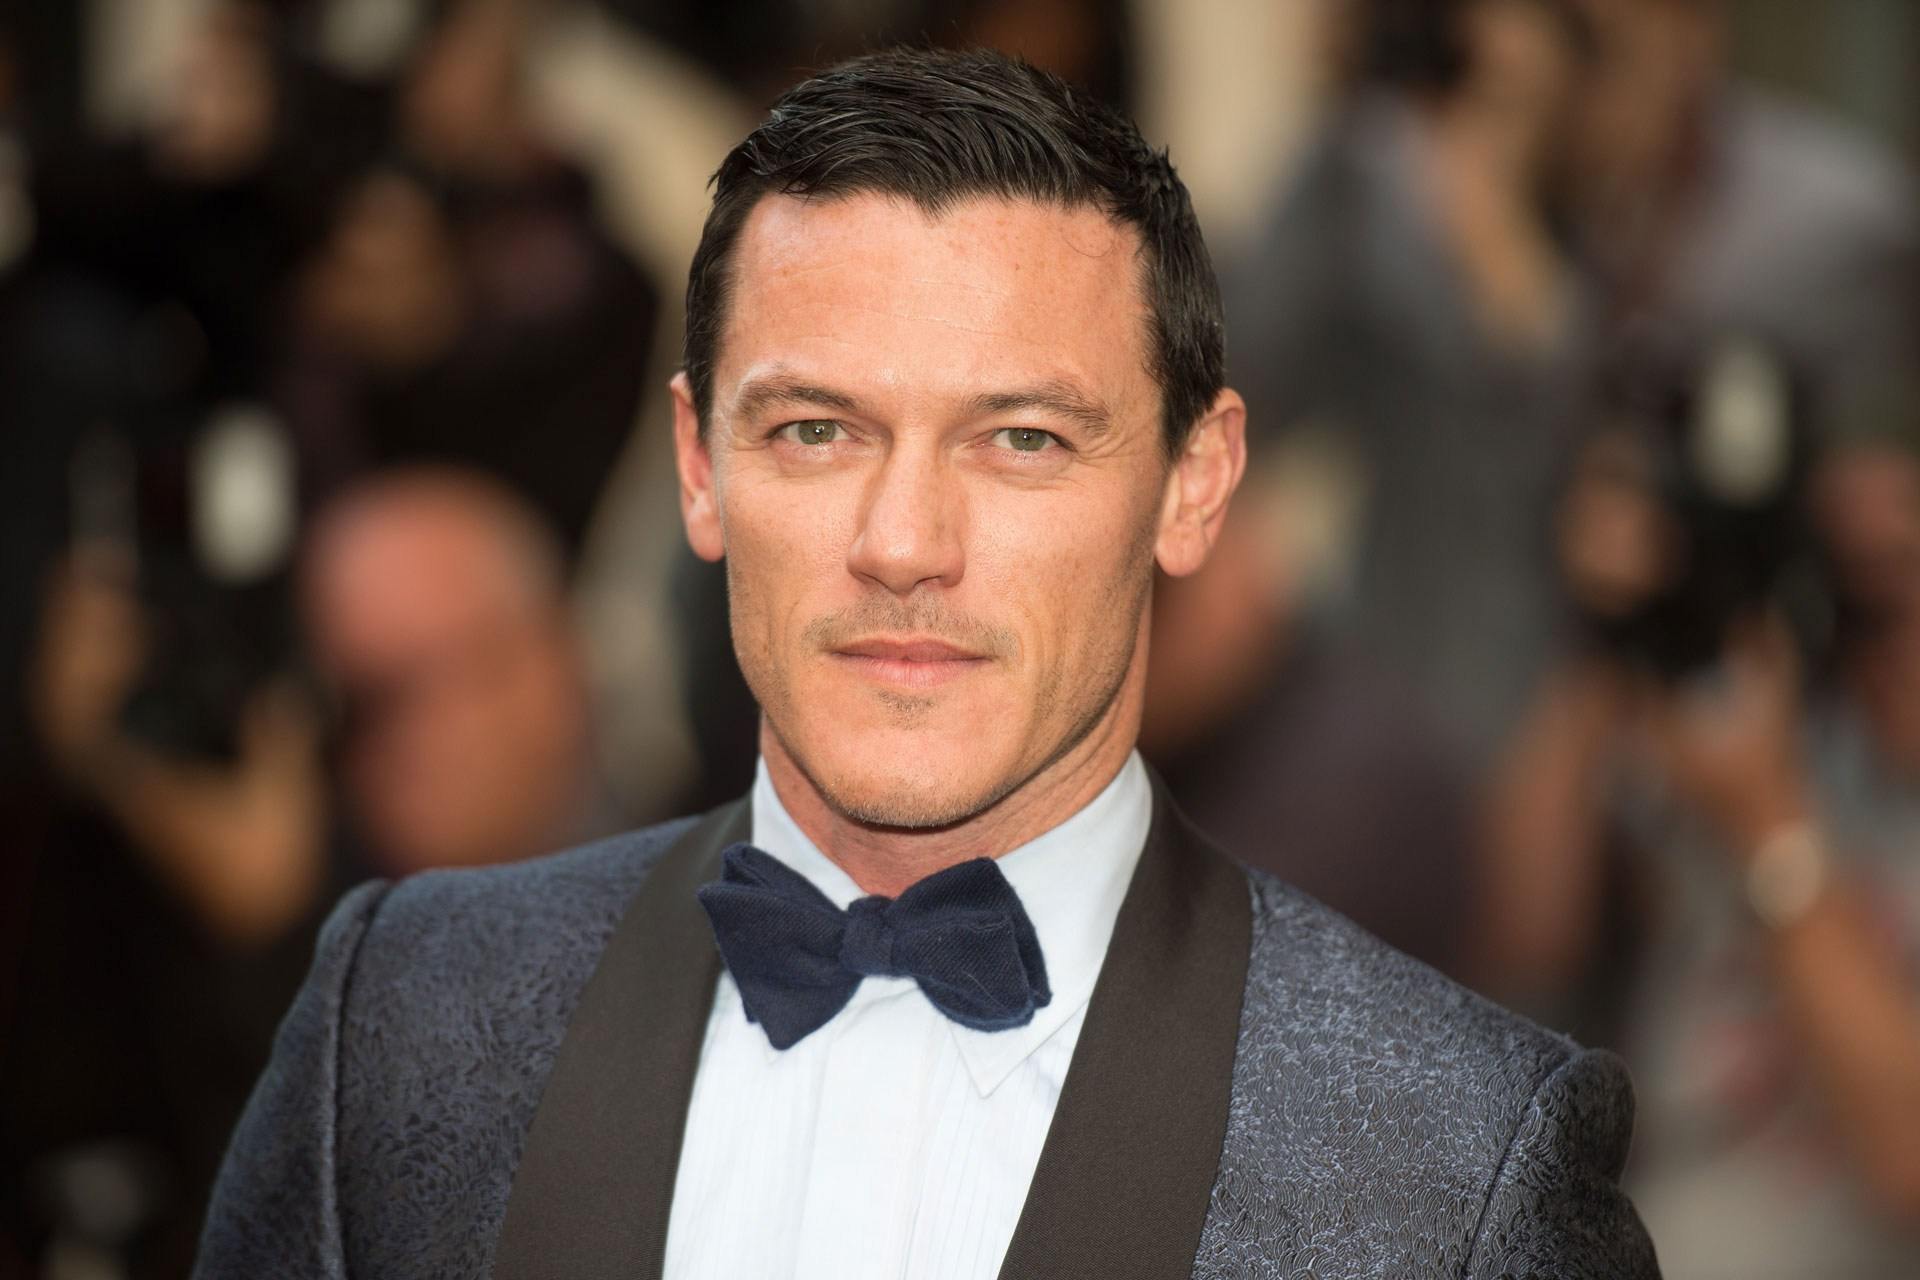 Luke Evans will play the arrogant hunter Gaston